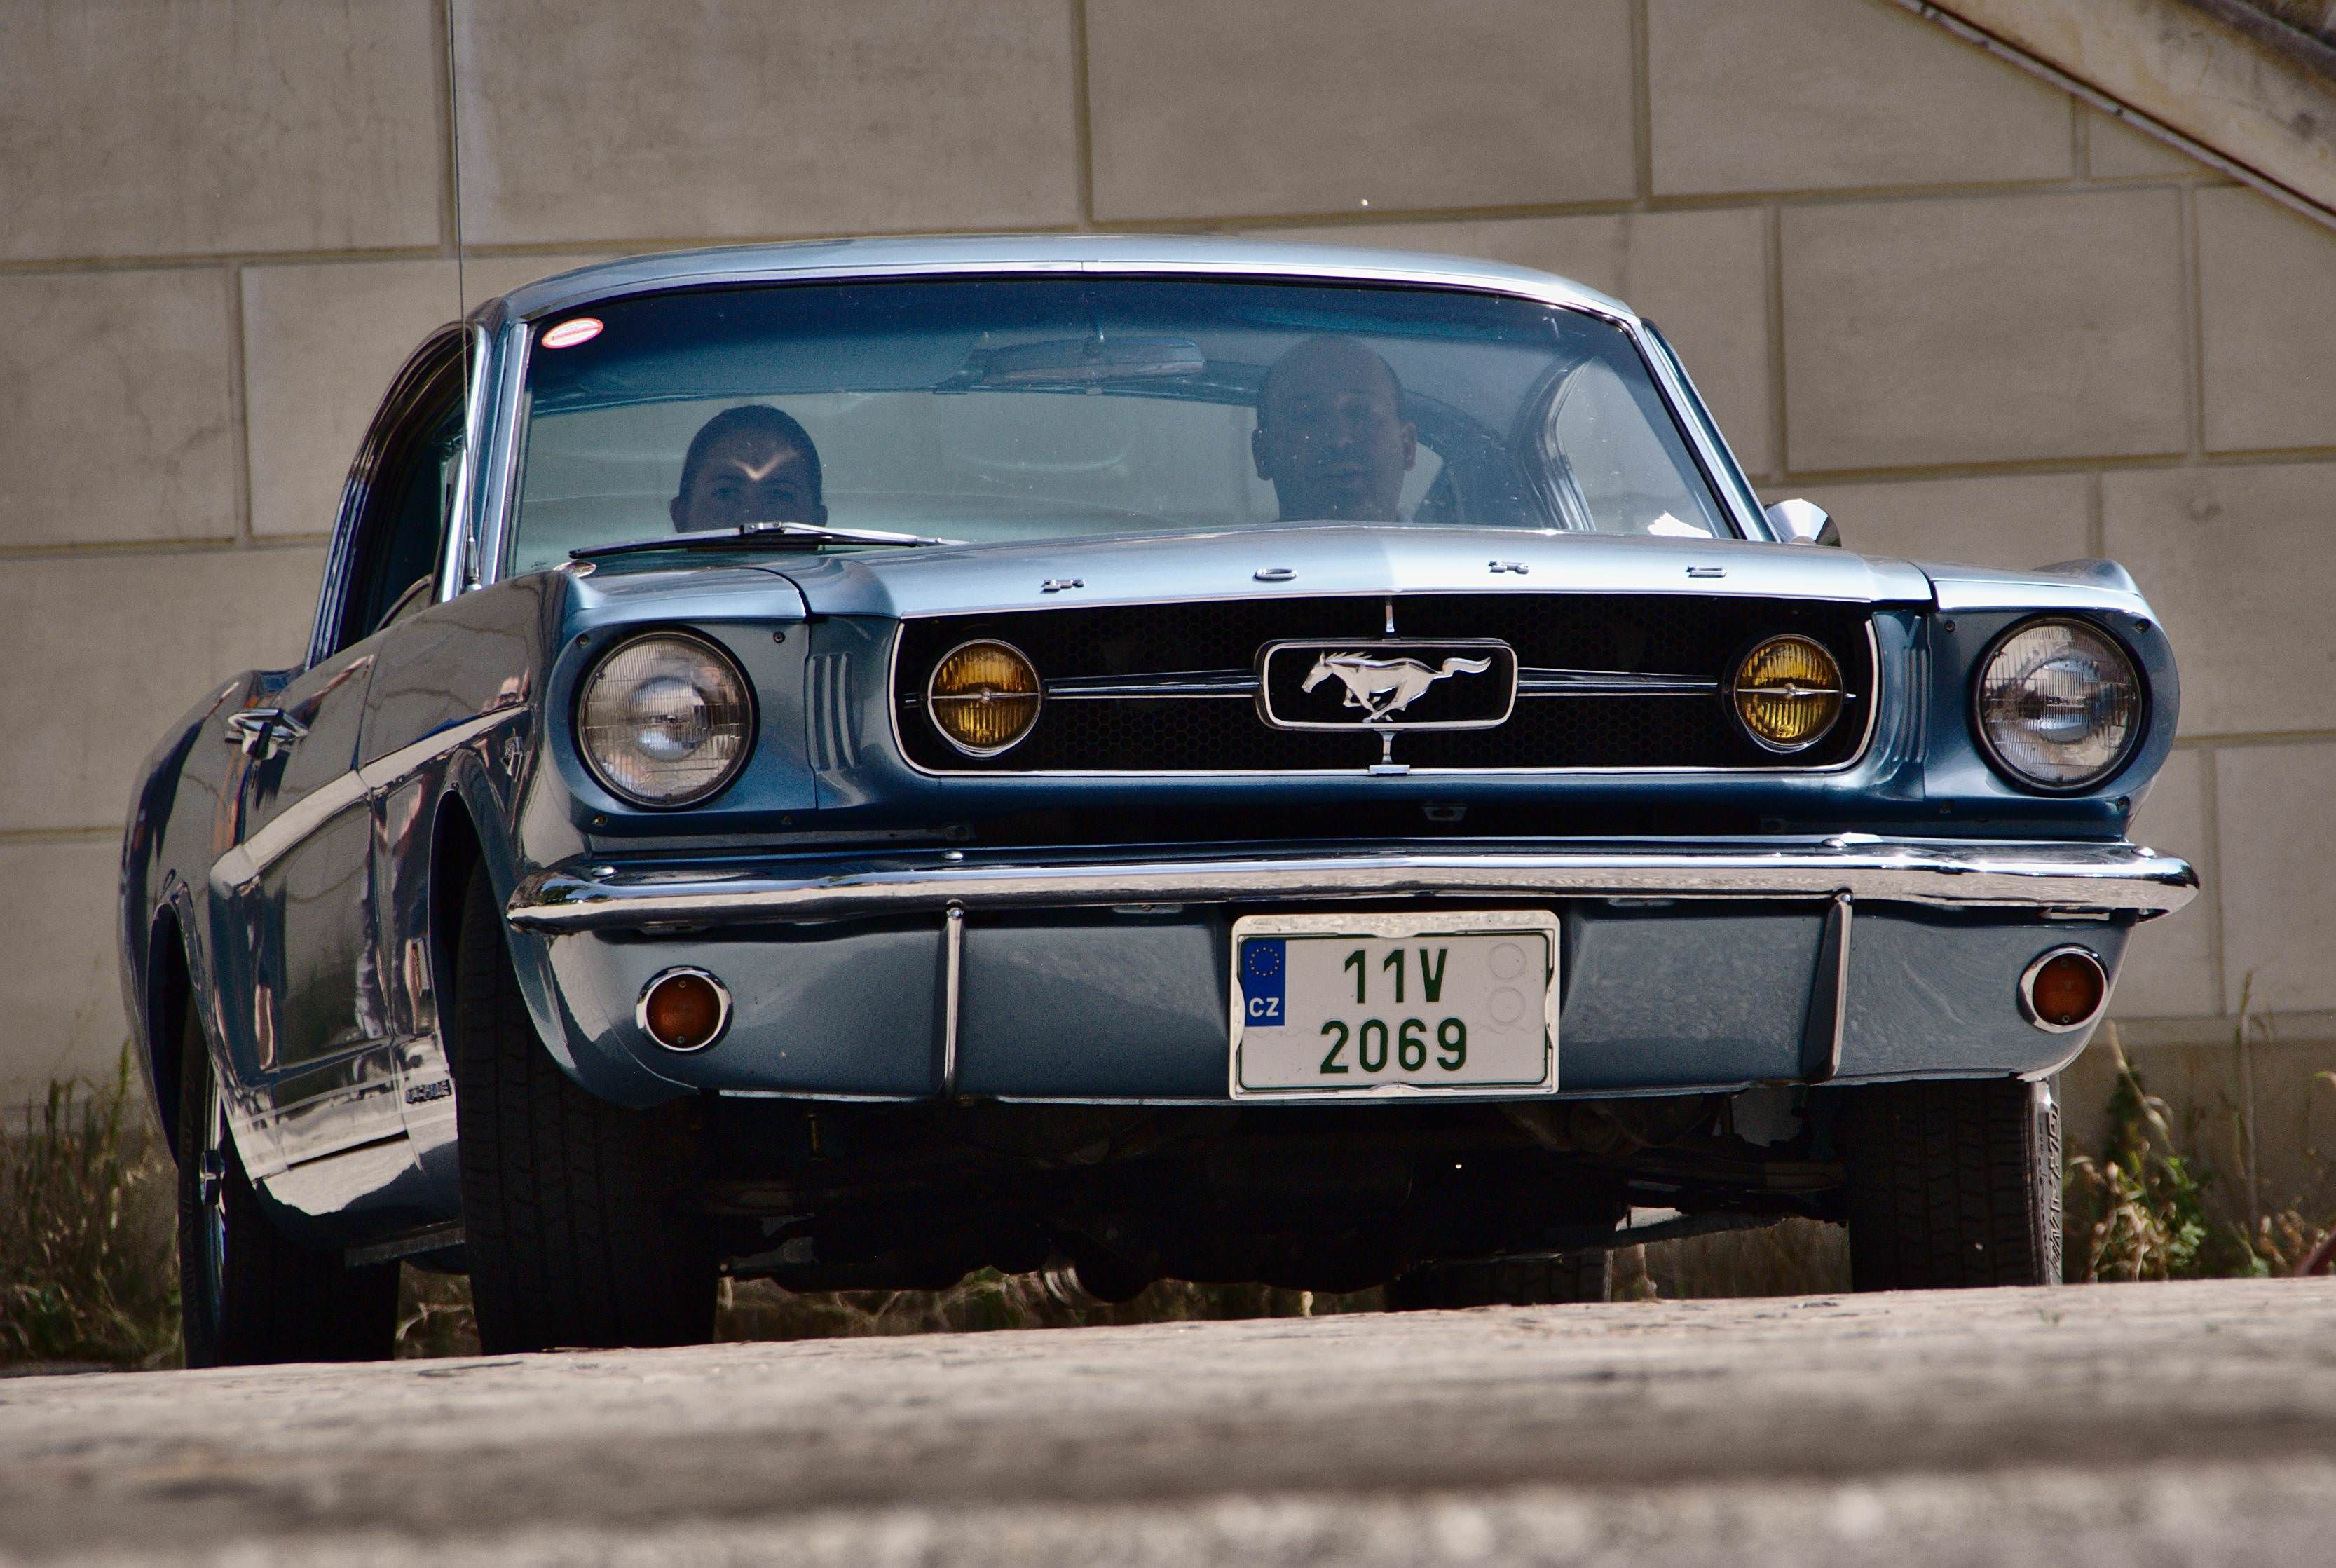 Beautiful mustang fastback 1965 at local oldtimer meet mustang fastback ford mustang quatro